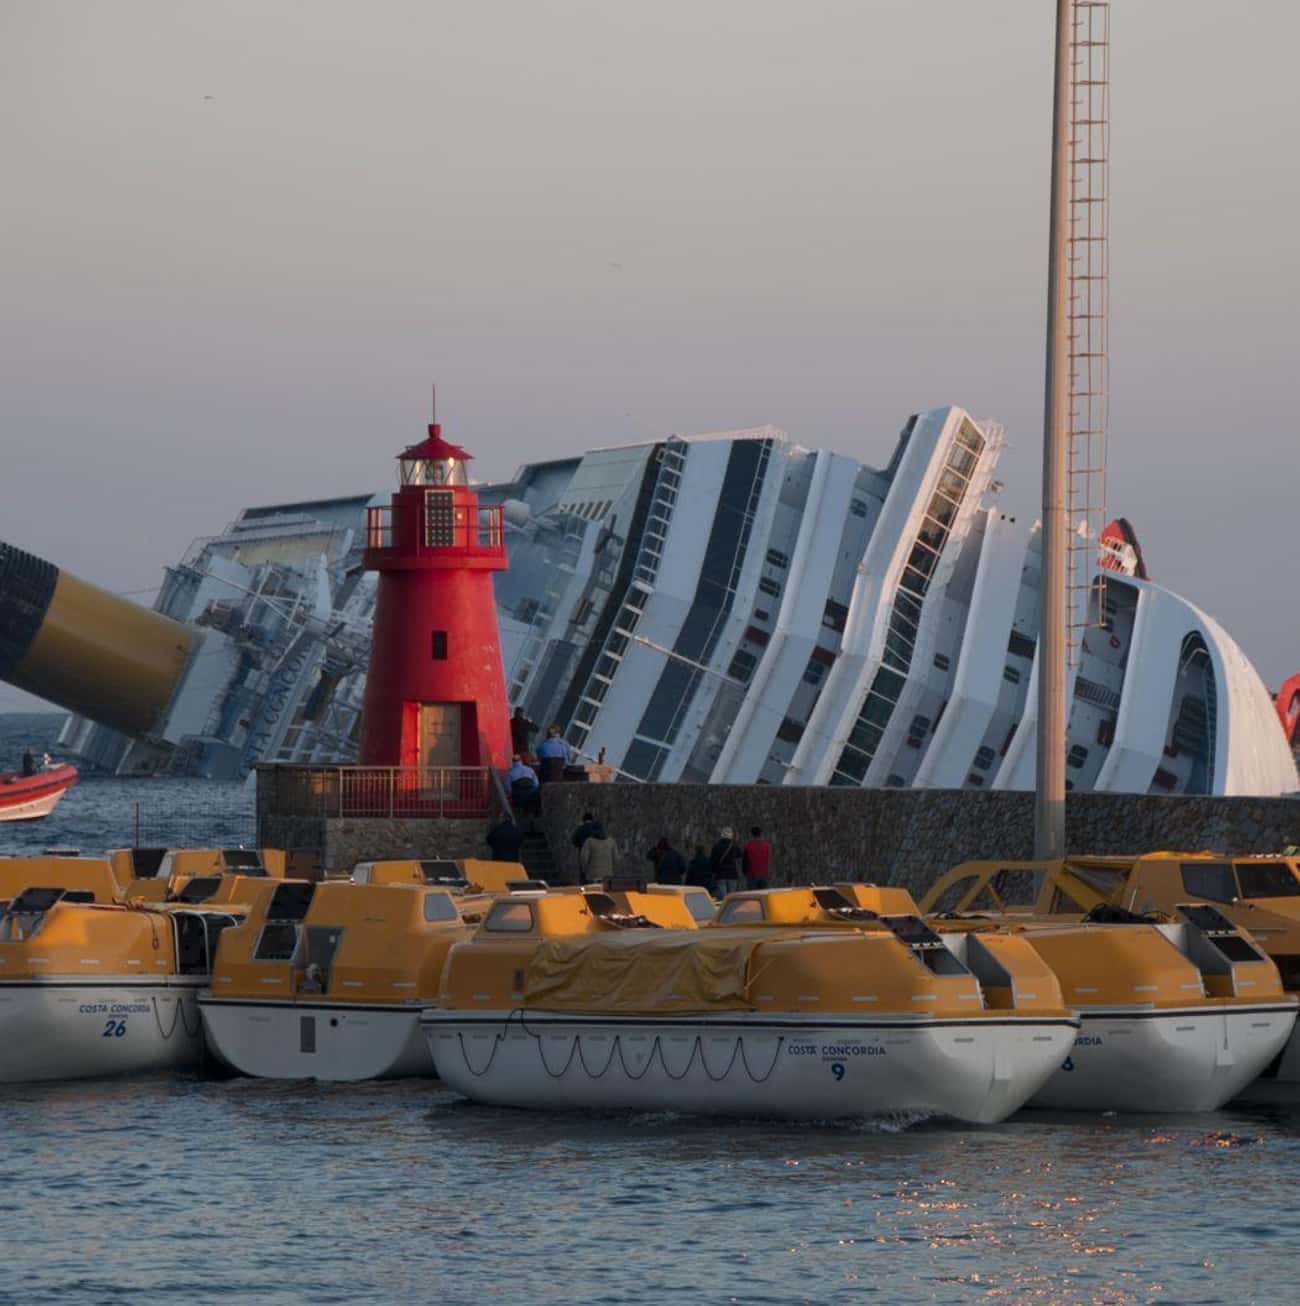 Costa Concordia: Ran Aground is listed (or ranked) 3 on the list The Worst Cruise Ship Disasters